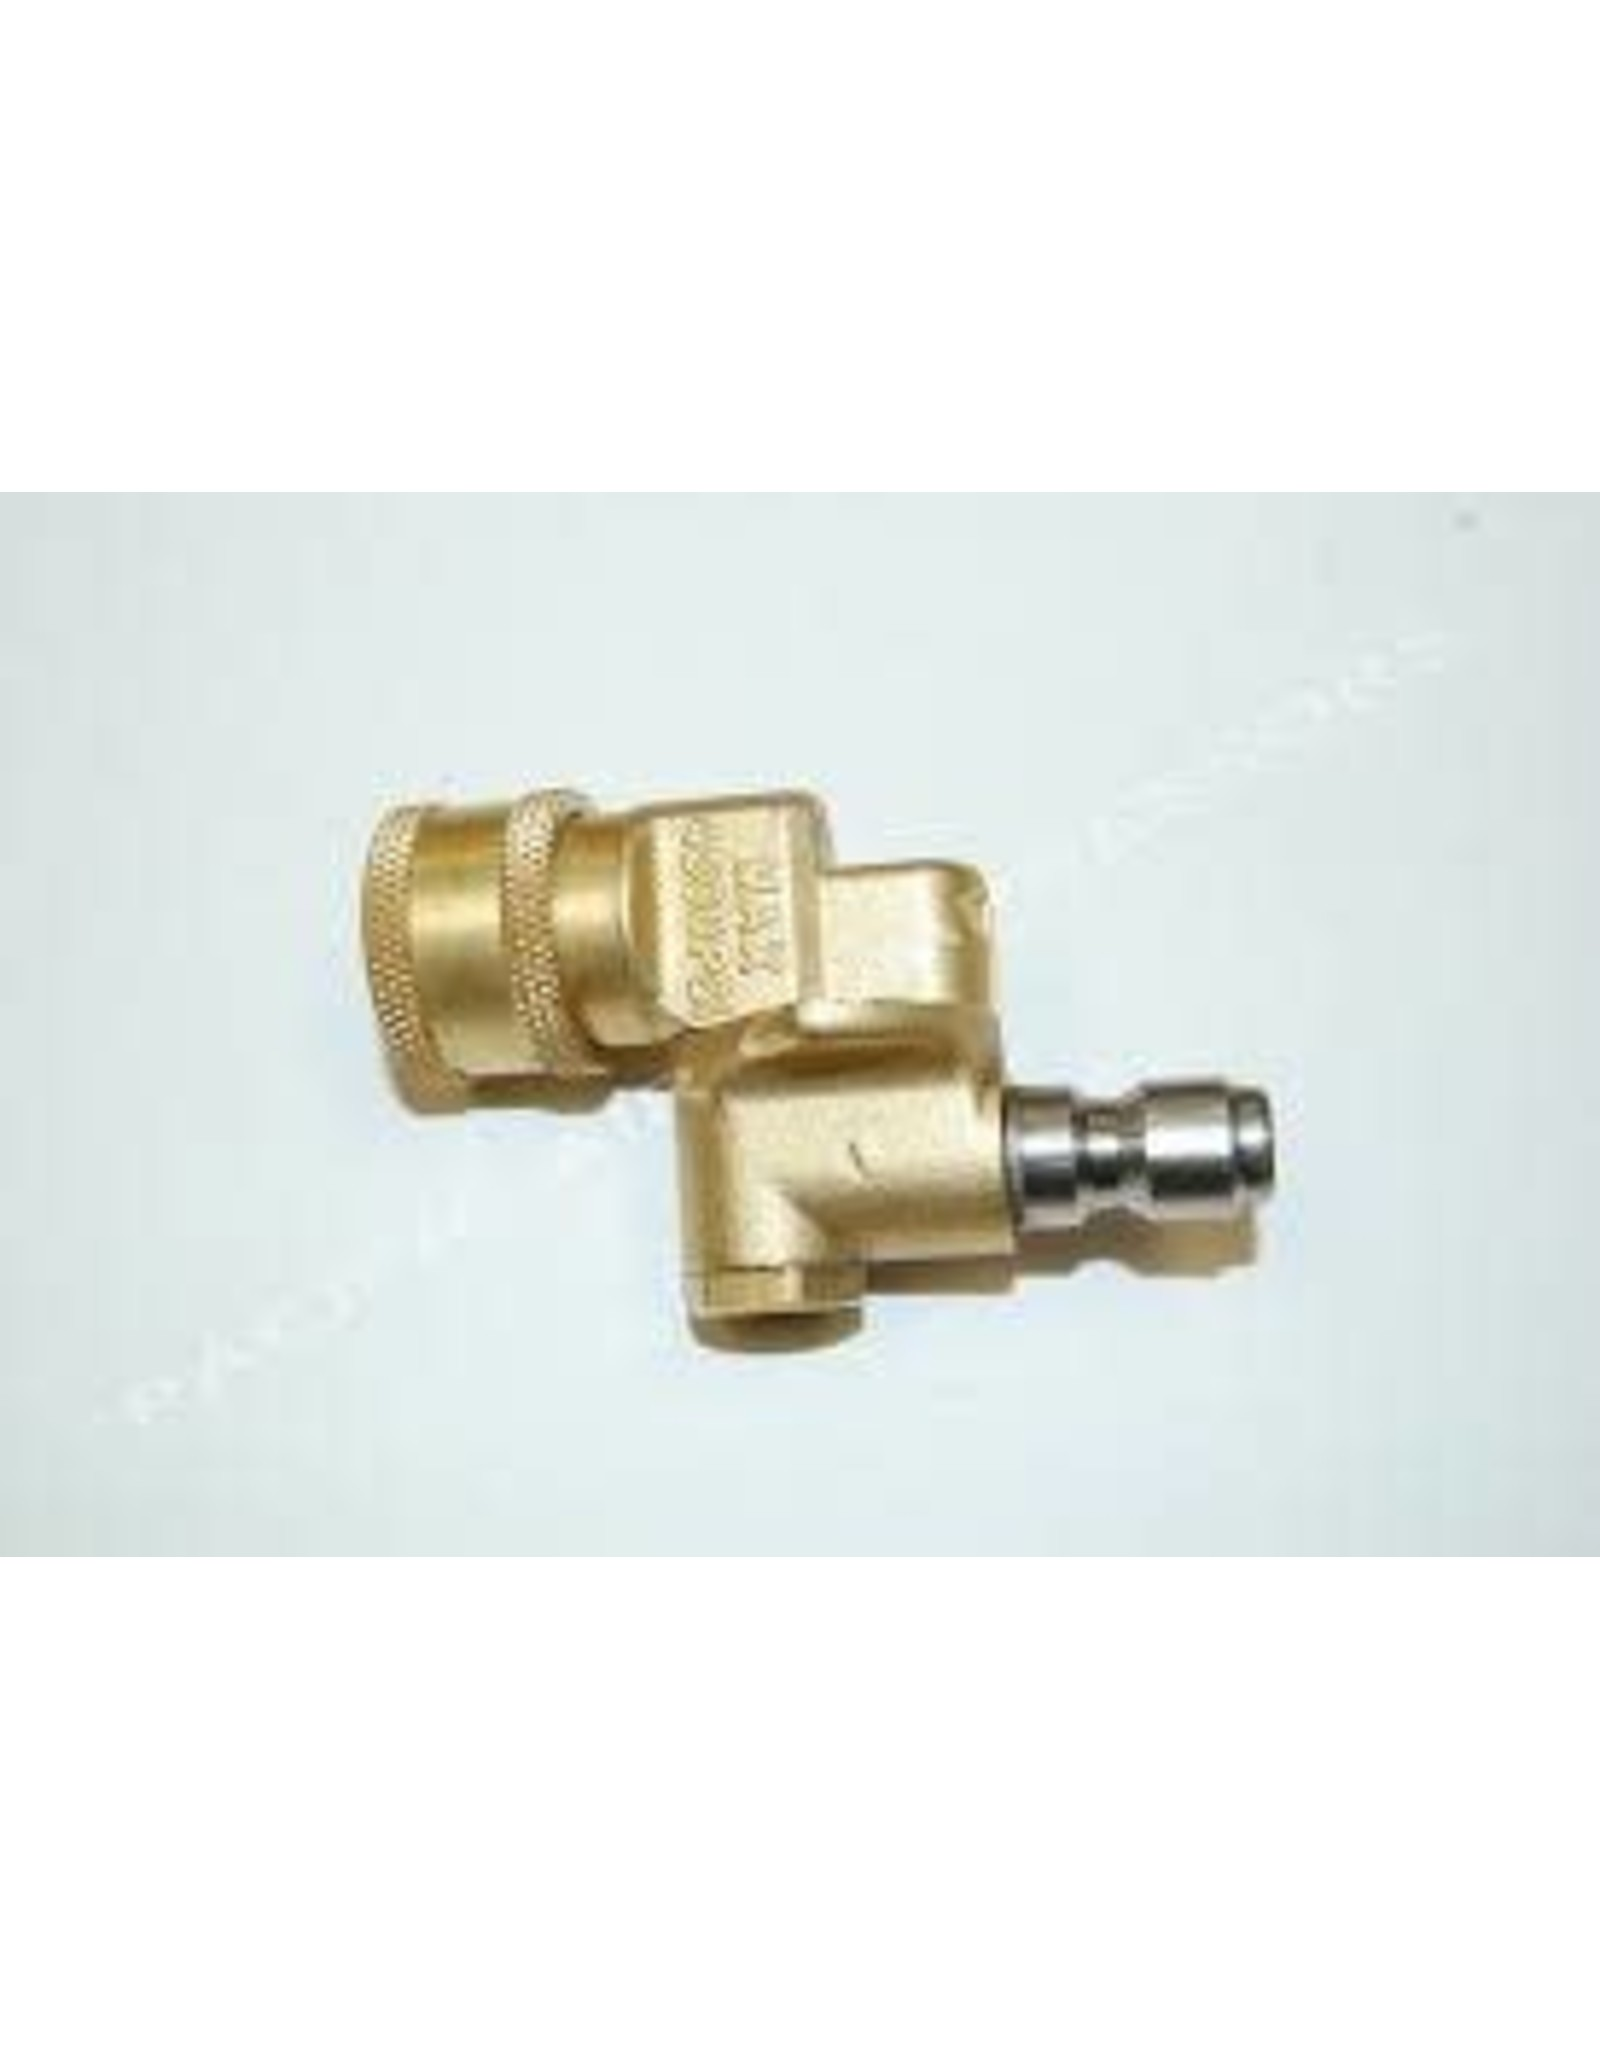 BE 85.300.172 Pivot Coupler 90 Degree